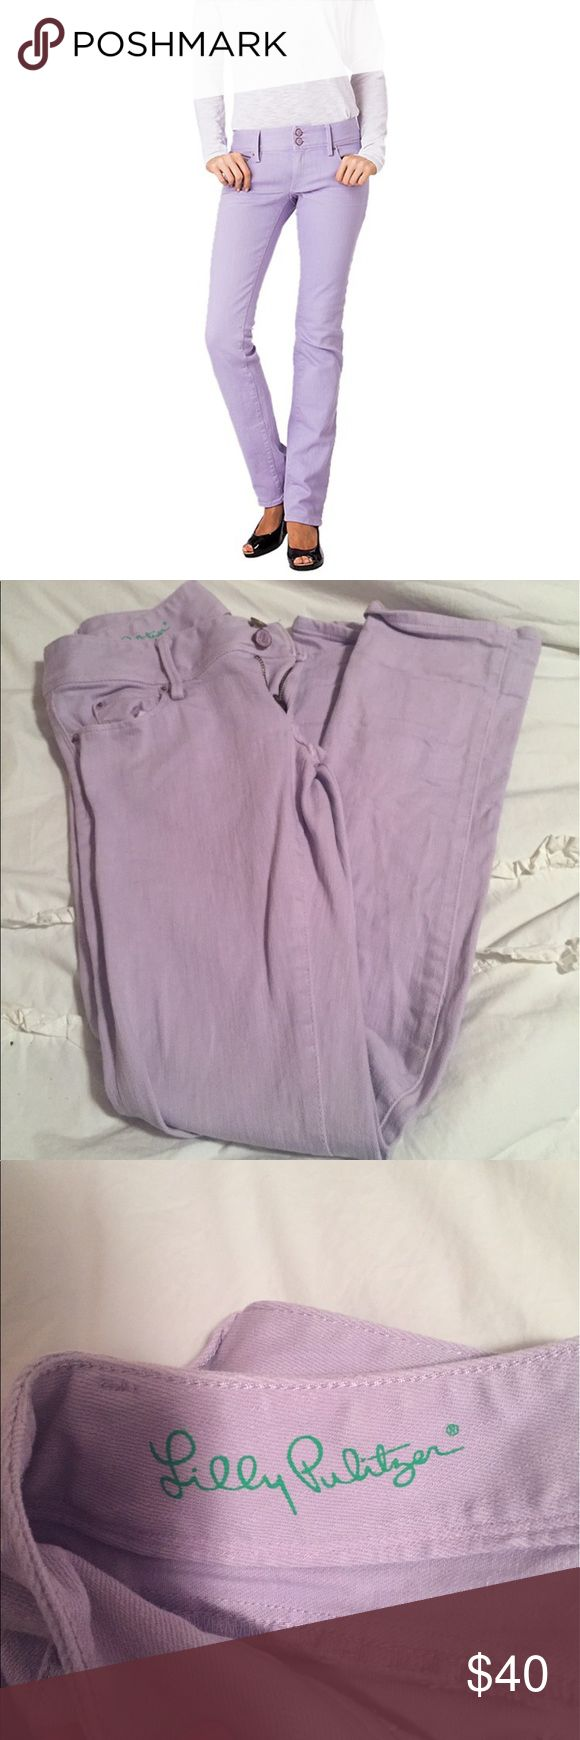 Lilly Pulitzer lavender jeans Spring color in classic Lilly fashion. Detailed pockets, worth straight Jean. Perfect condition Lilly Pulitzer Jeans Straight Leg